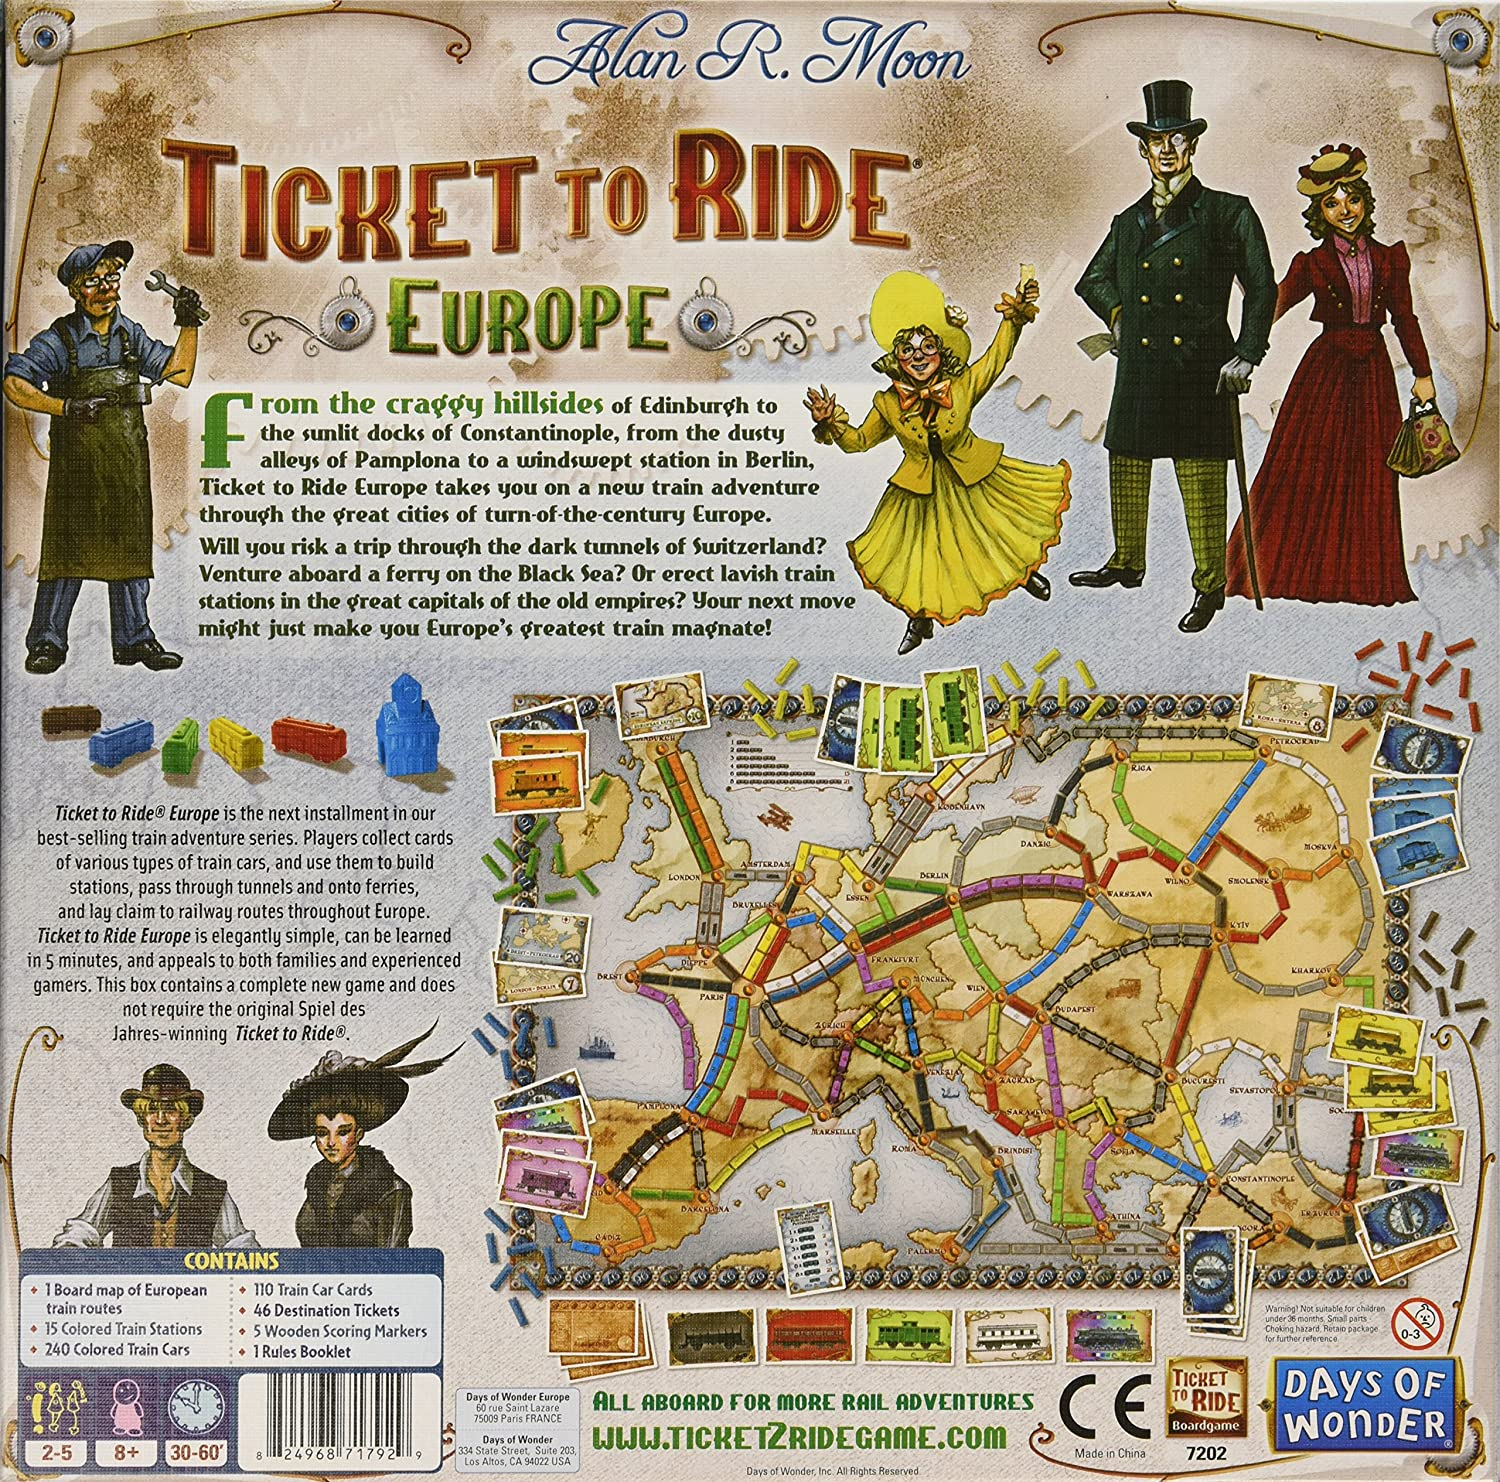 Ticket To Ride India Map.Amazon Com Ticket To Ride Europe Game Toys Games